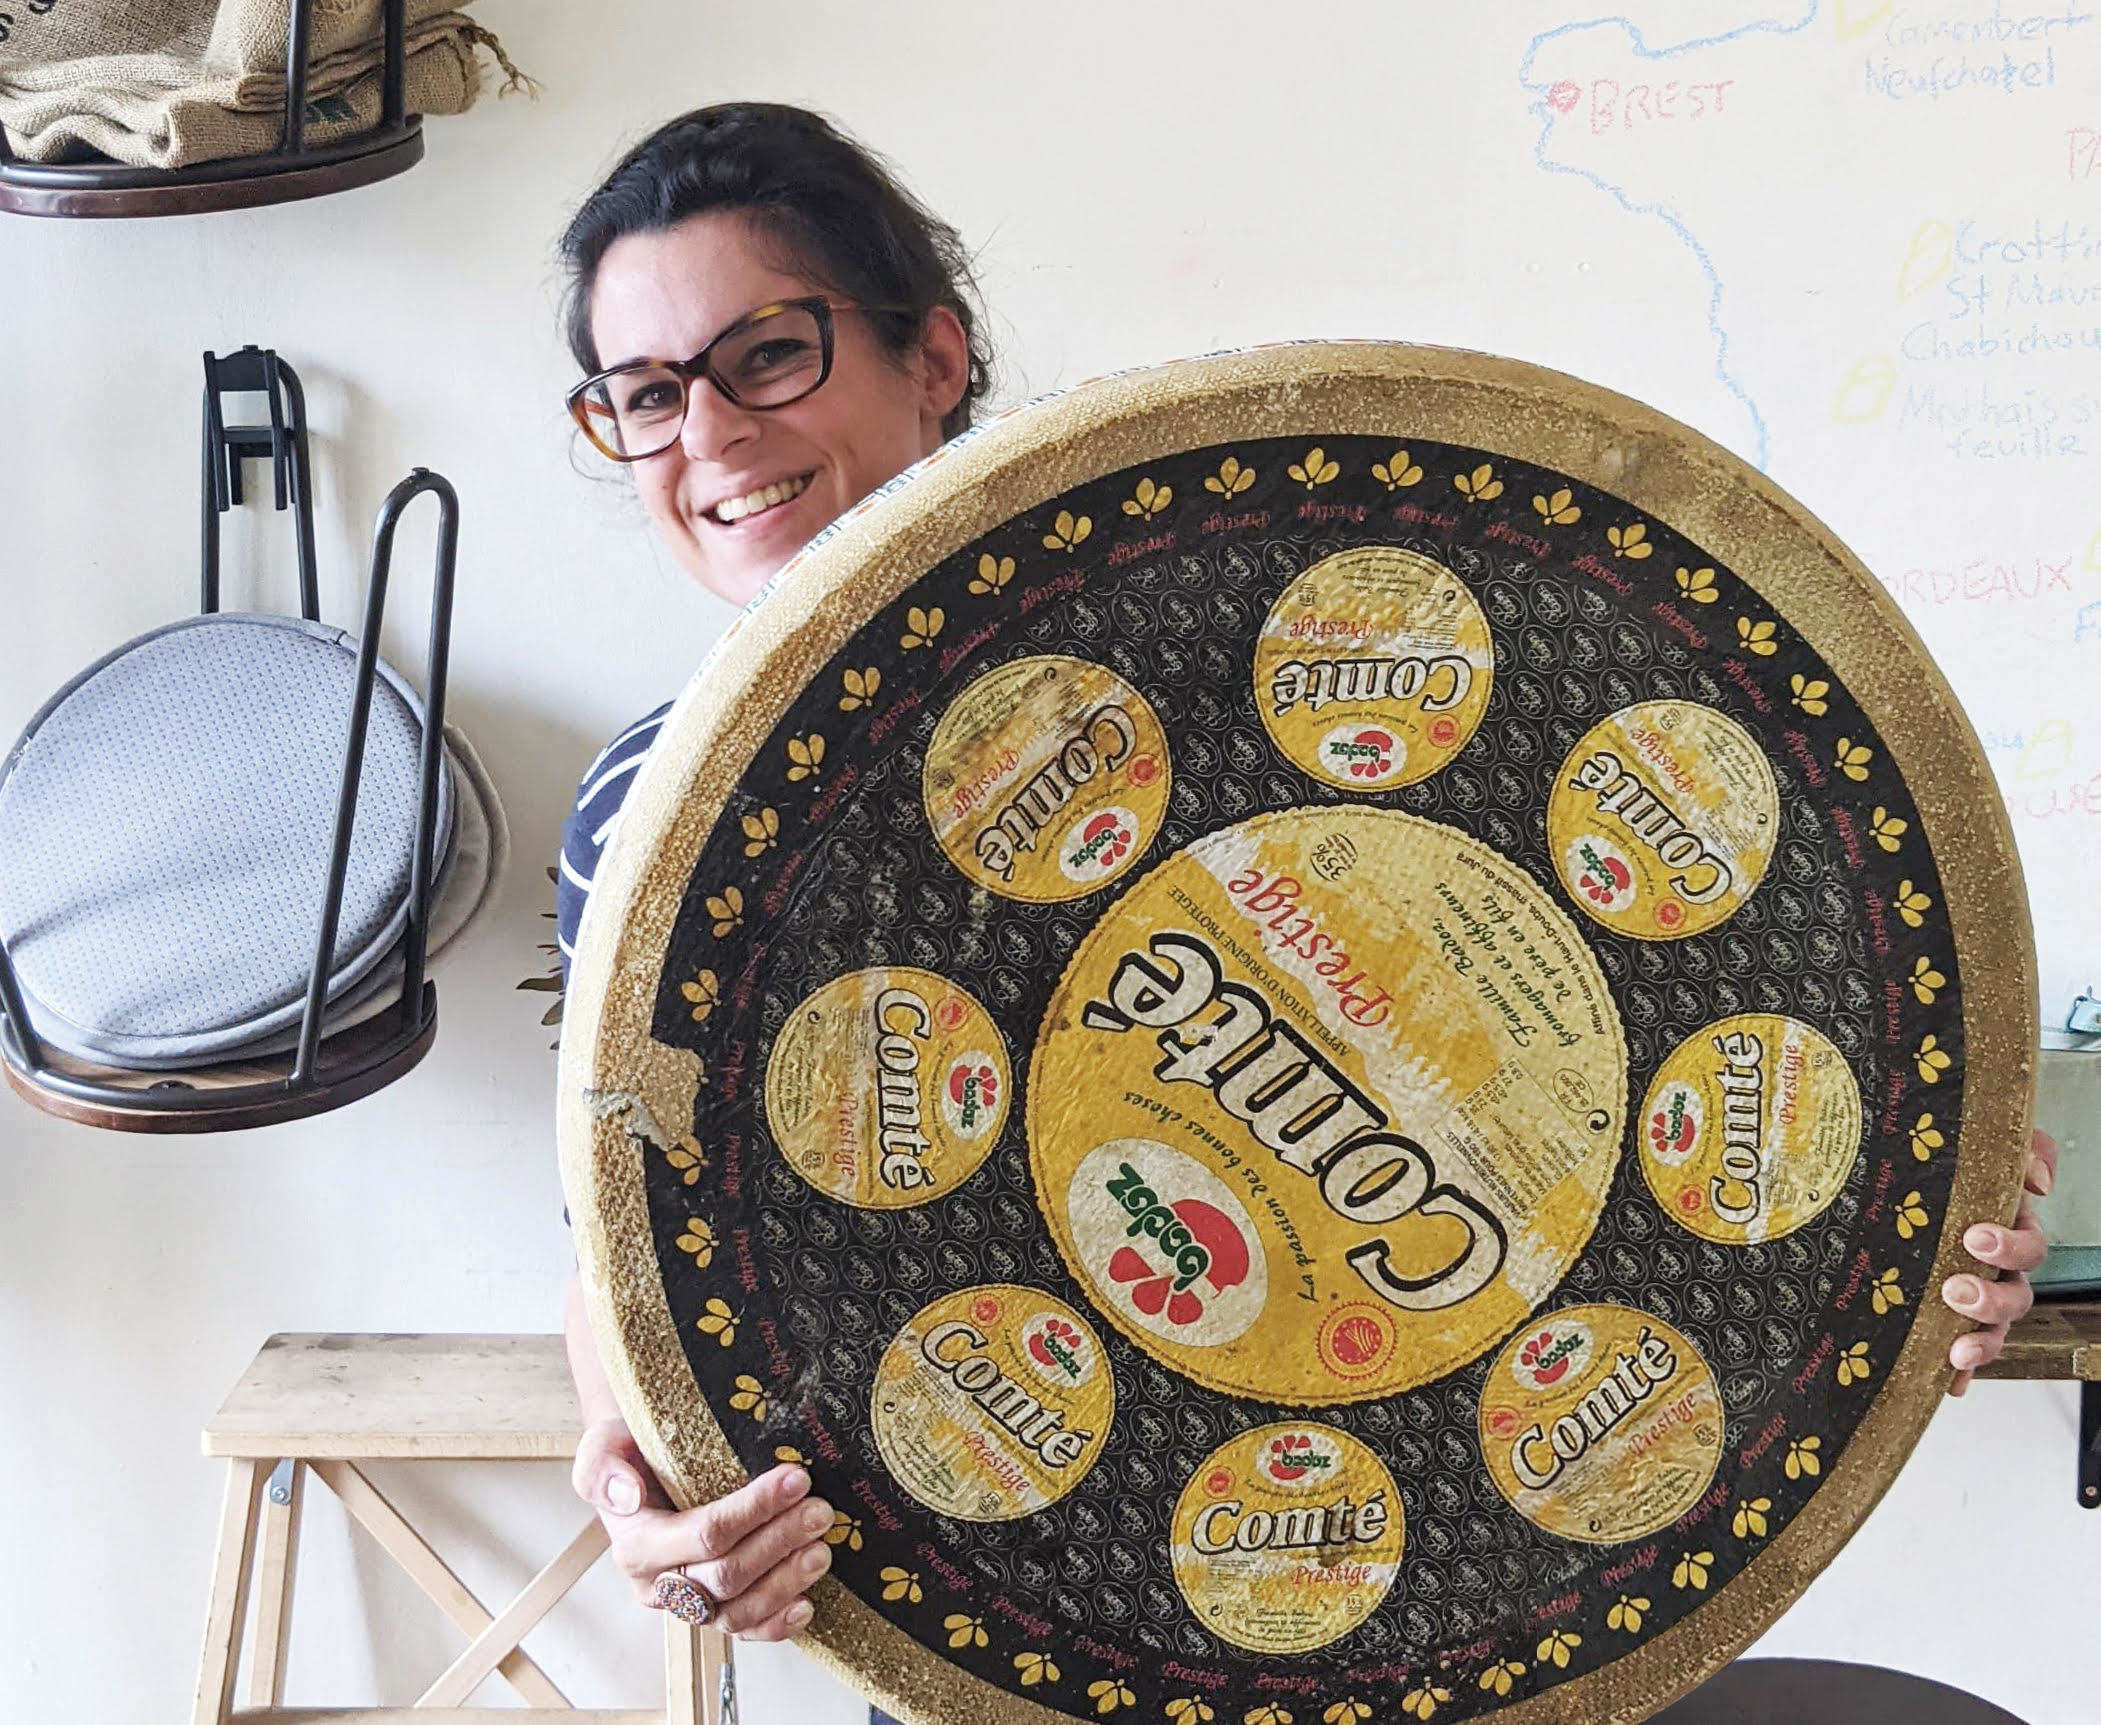 A woman holding a giant wheel of comte cheese